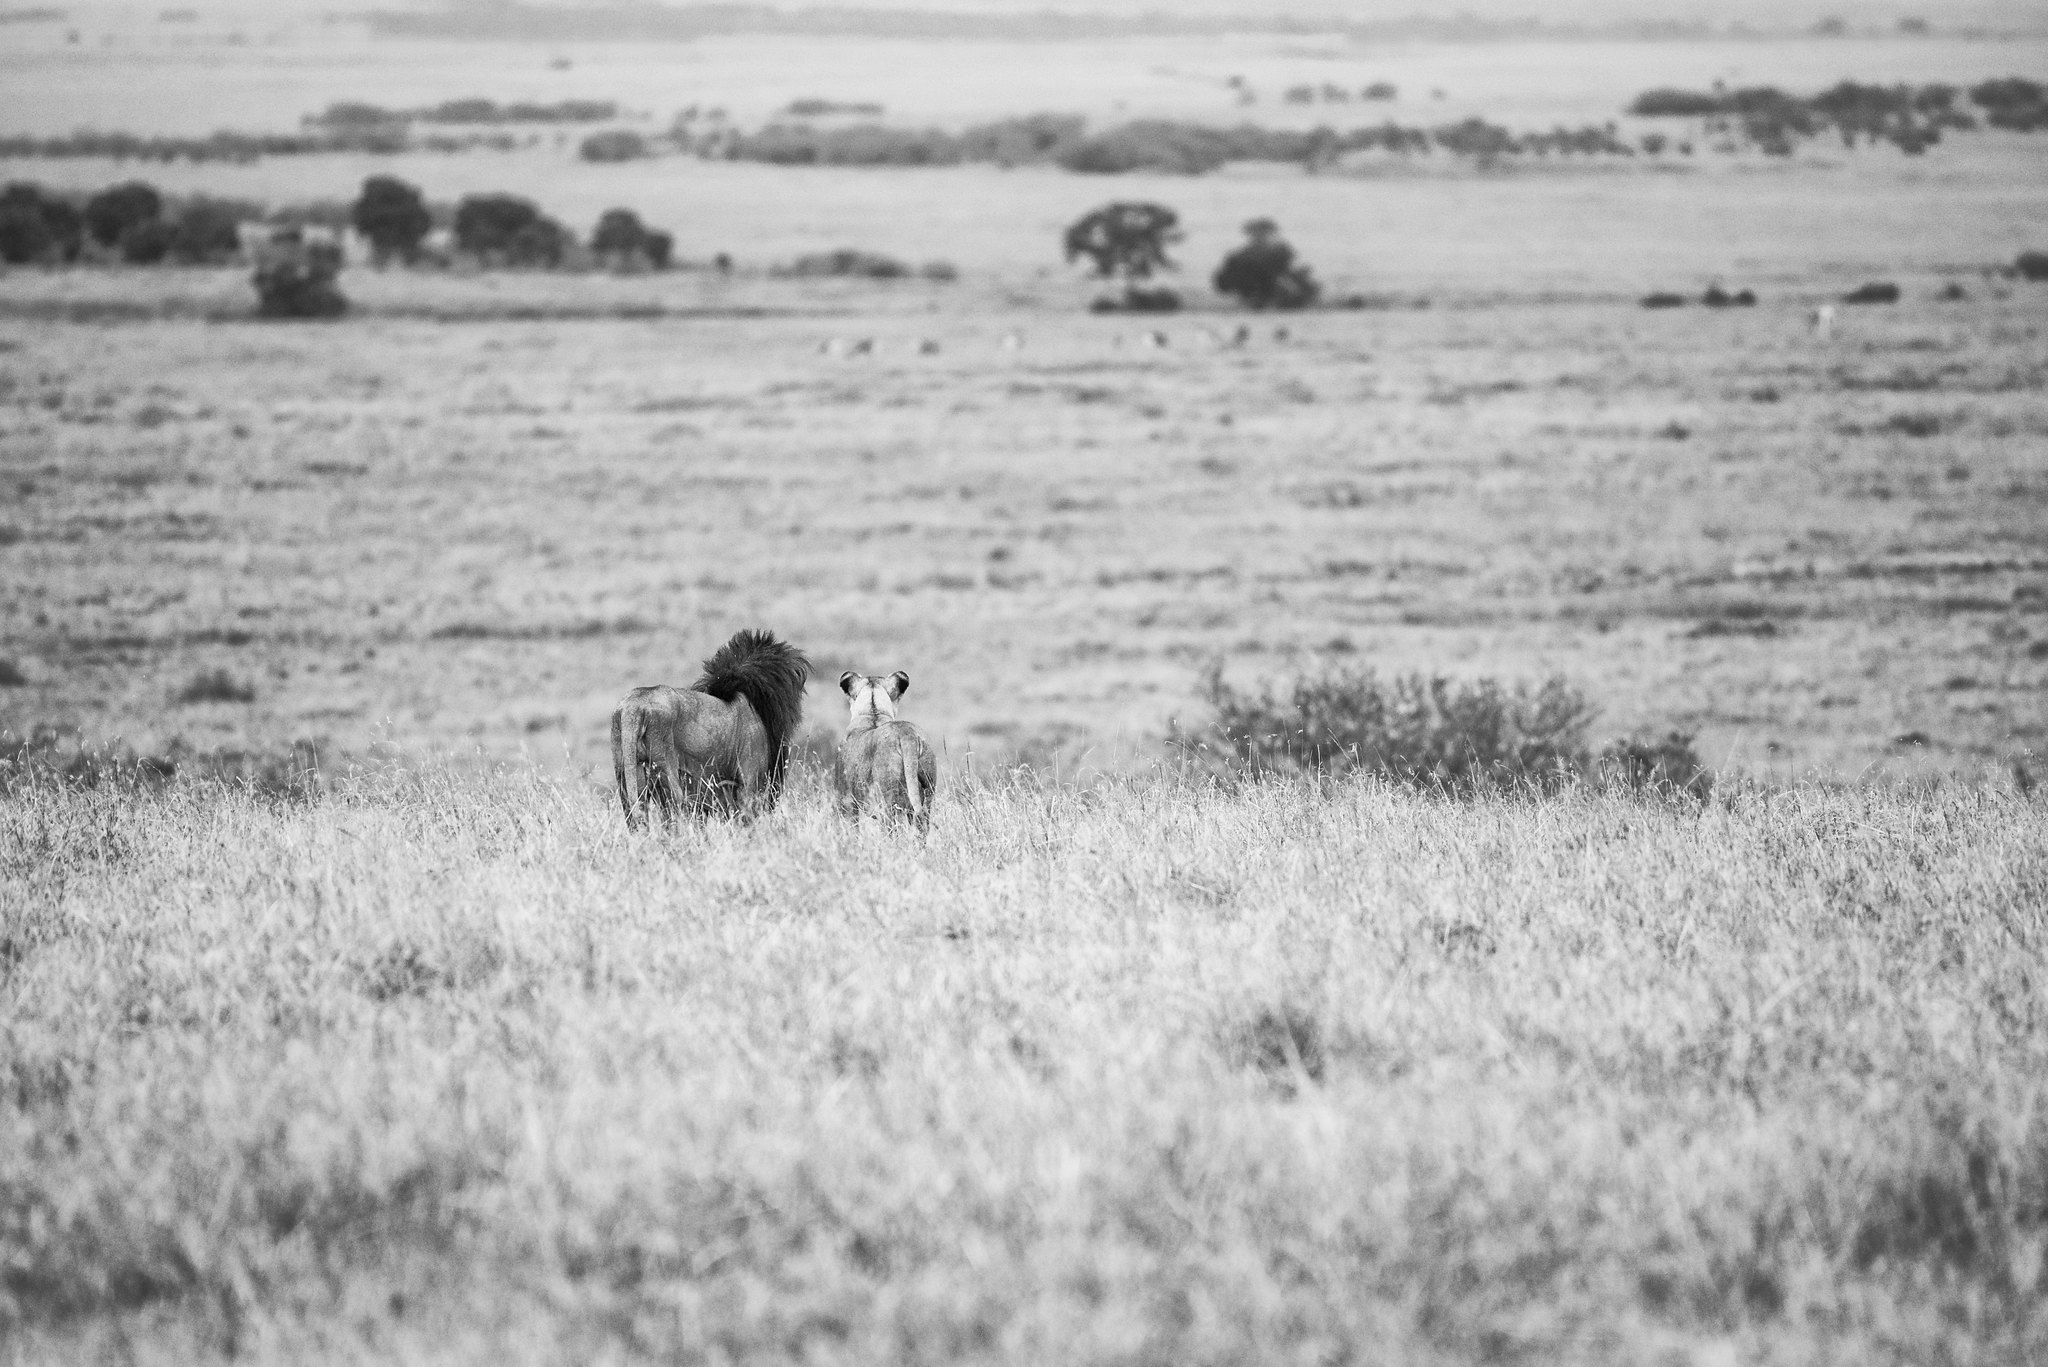 The wide mara